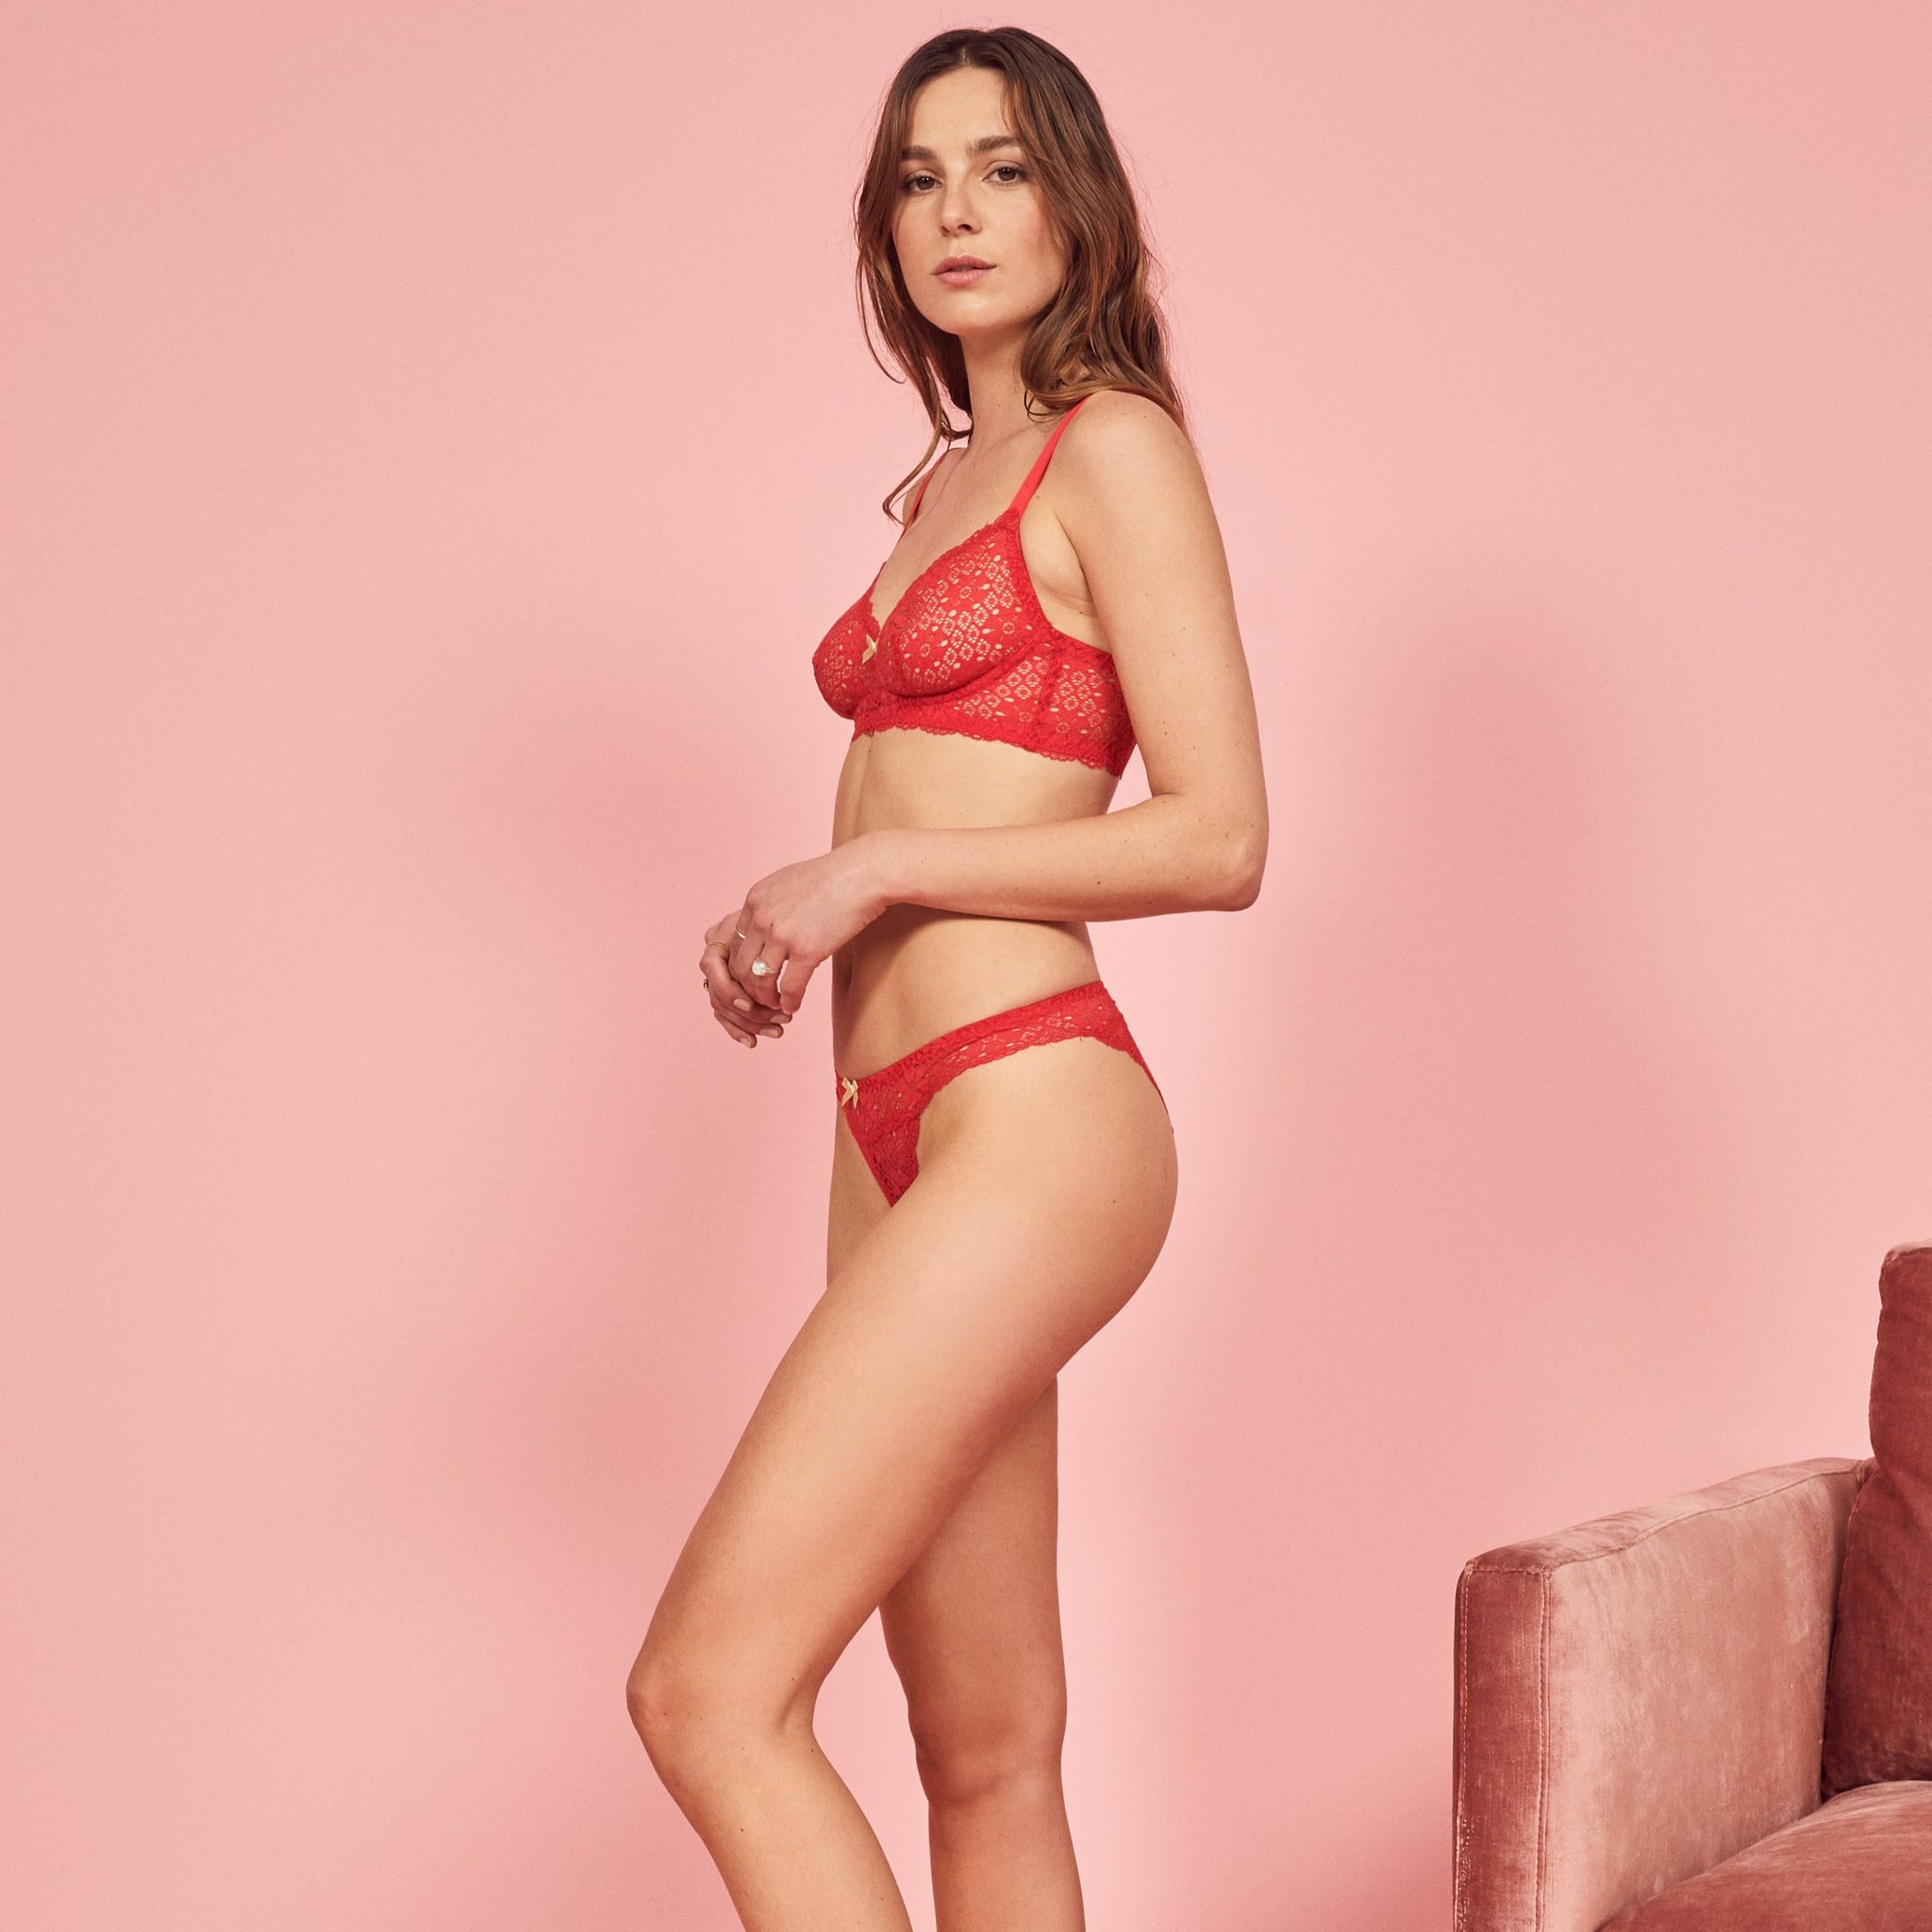 ea135bb682366 Reformation Cosabella Underwear | POPSUGAR Fashion